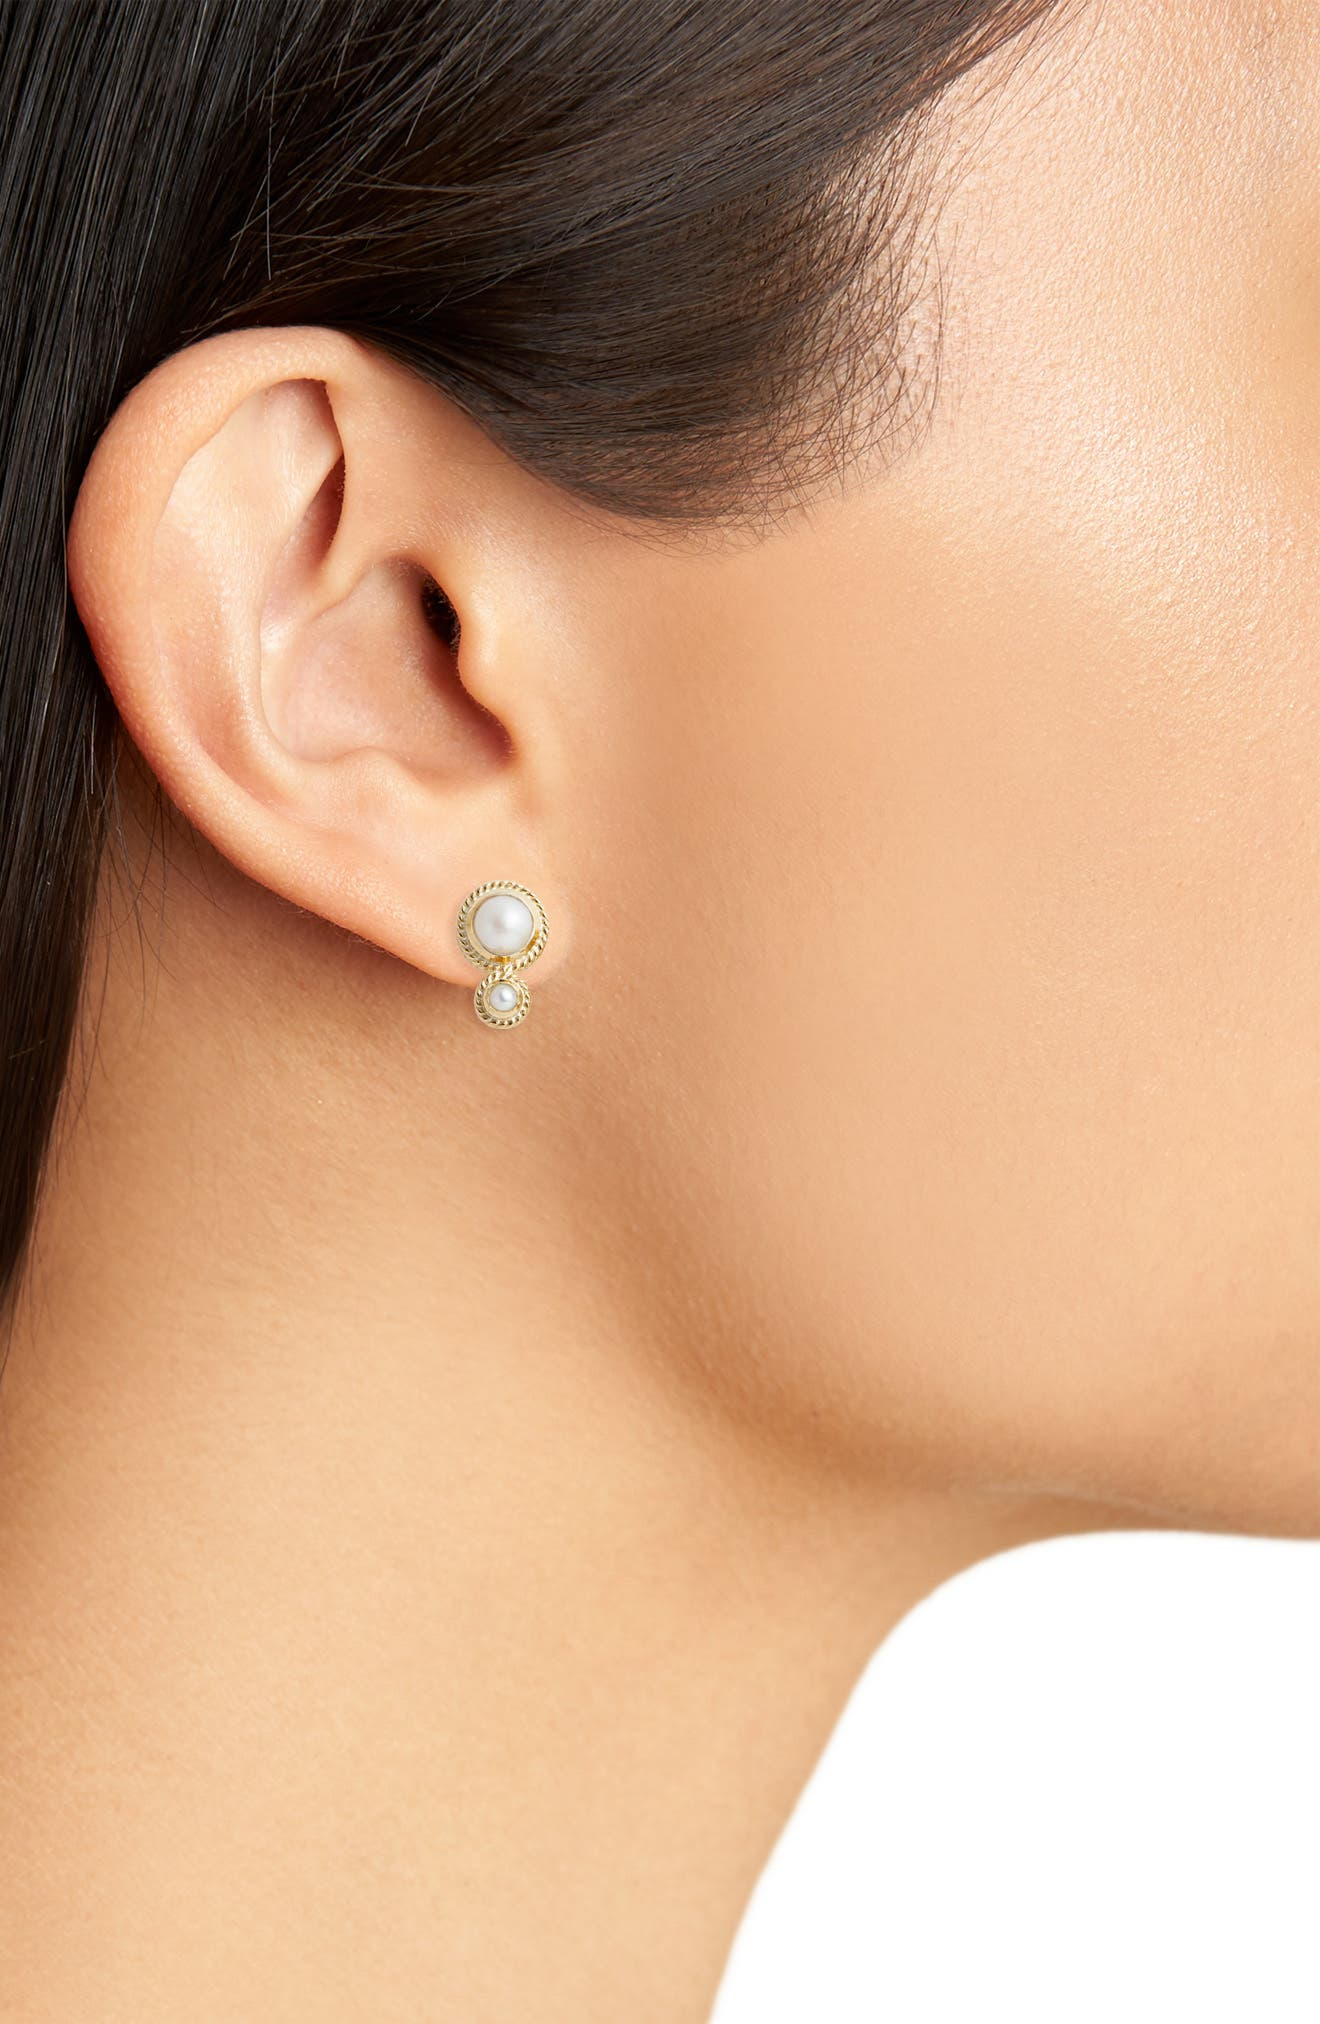 Pearl Double Stud Earrings,                             Alternate thumbnail 2, color,                             710